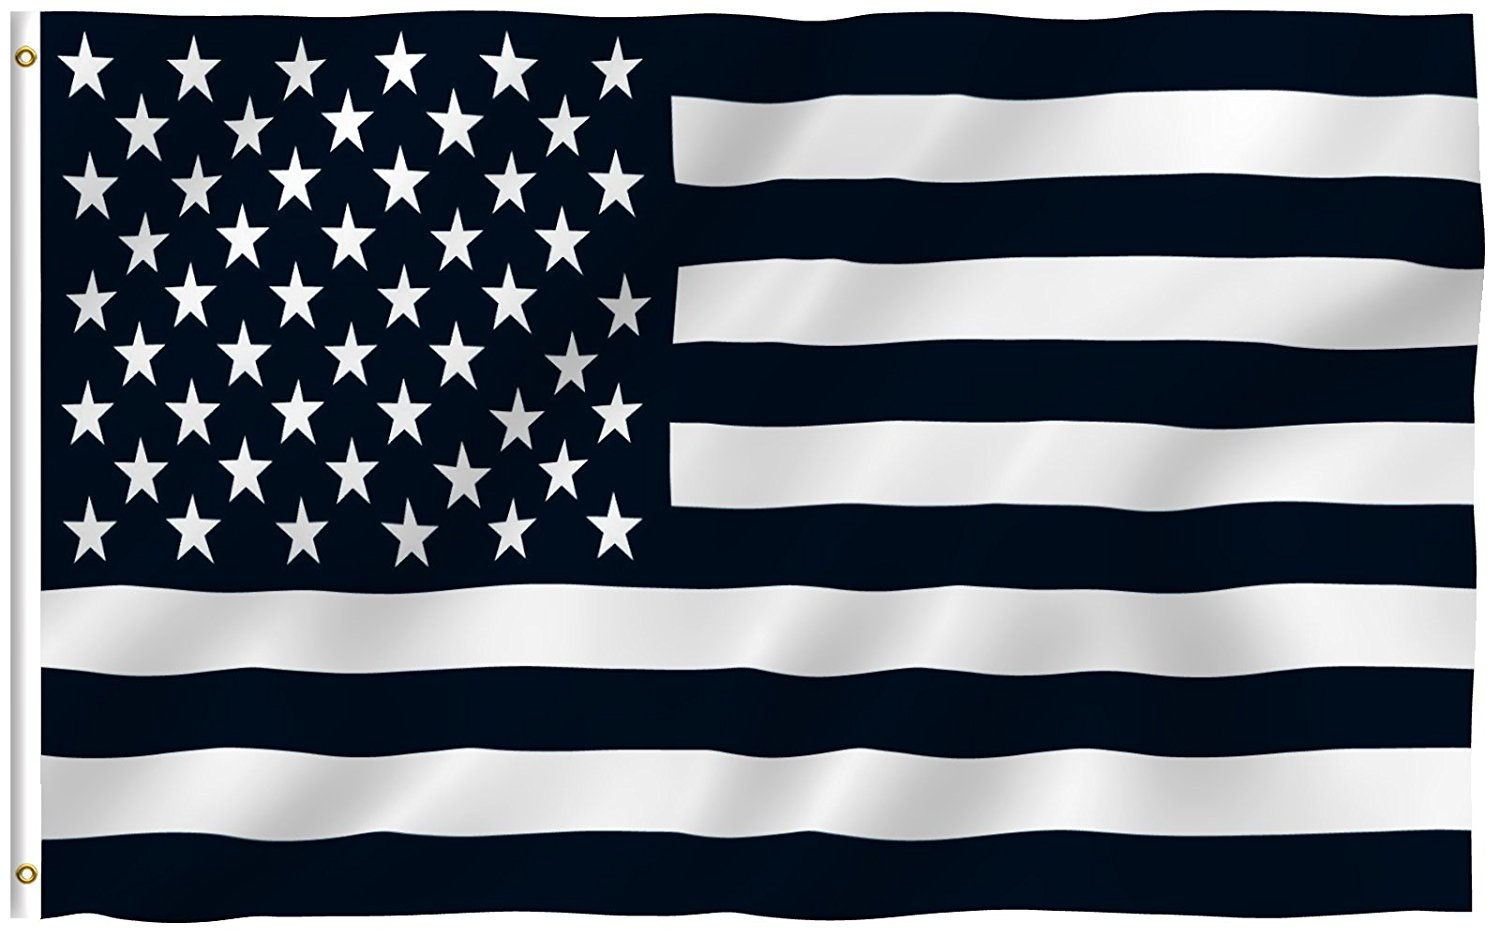 flag american usa nascar meaning army military recession lapel diversity room employment history